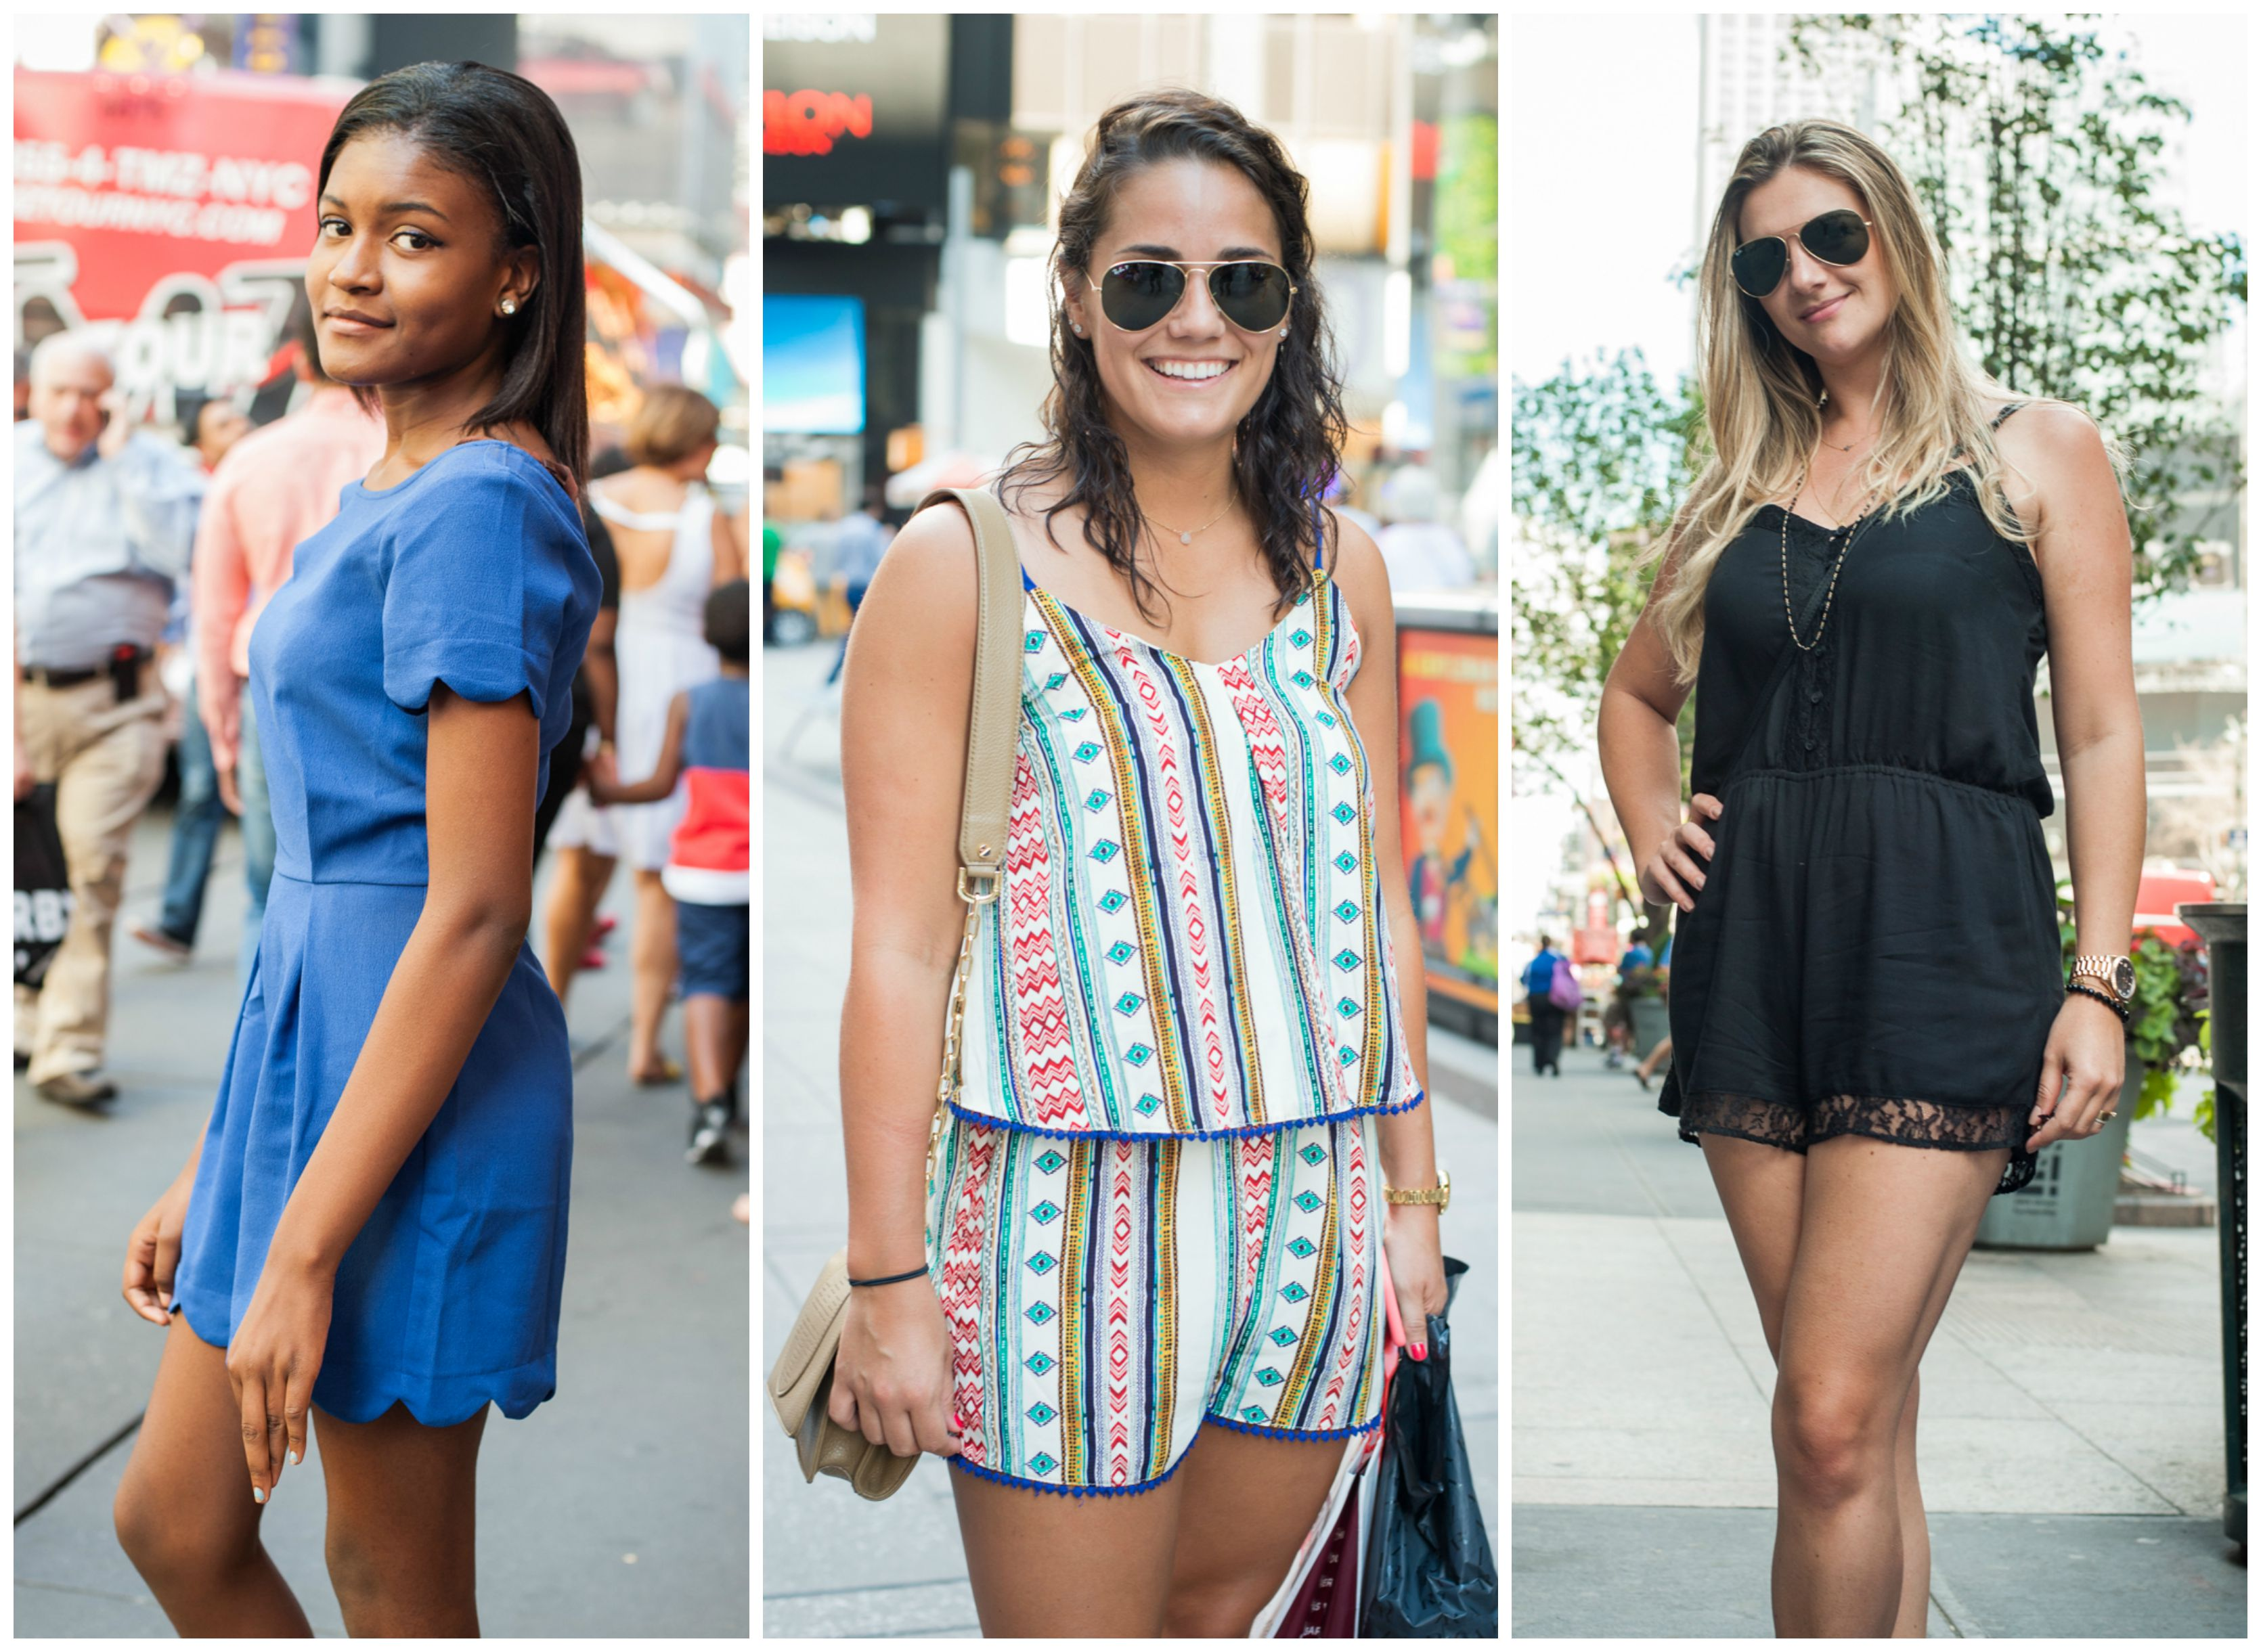 d83fee20536 13 Street style romper outfits that will change your mind about the trend